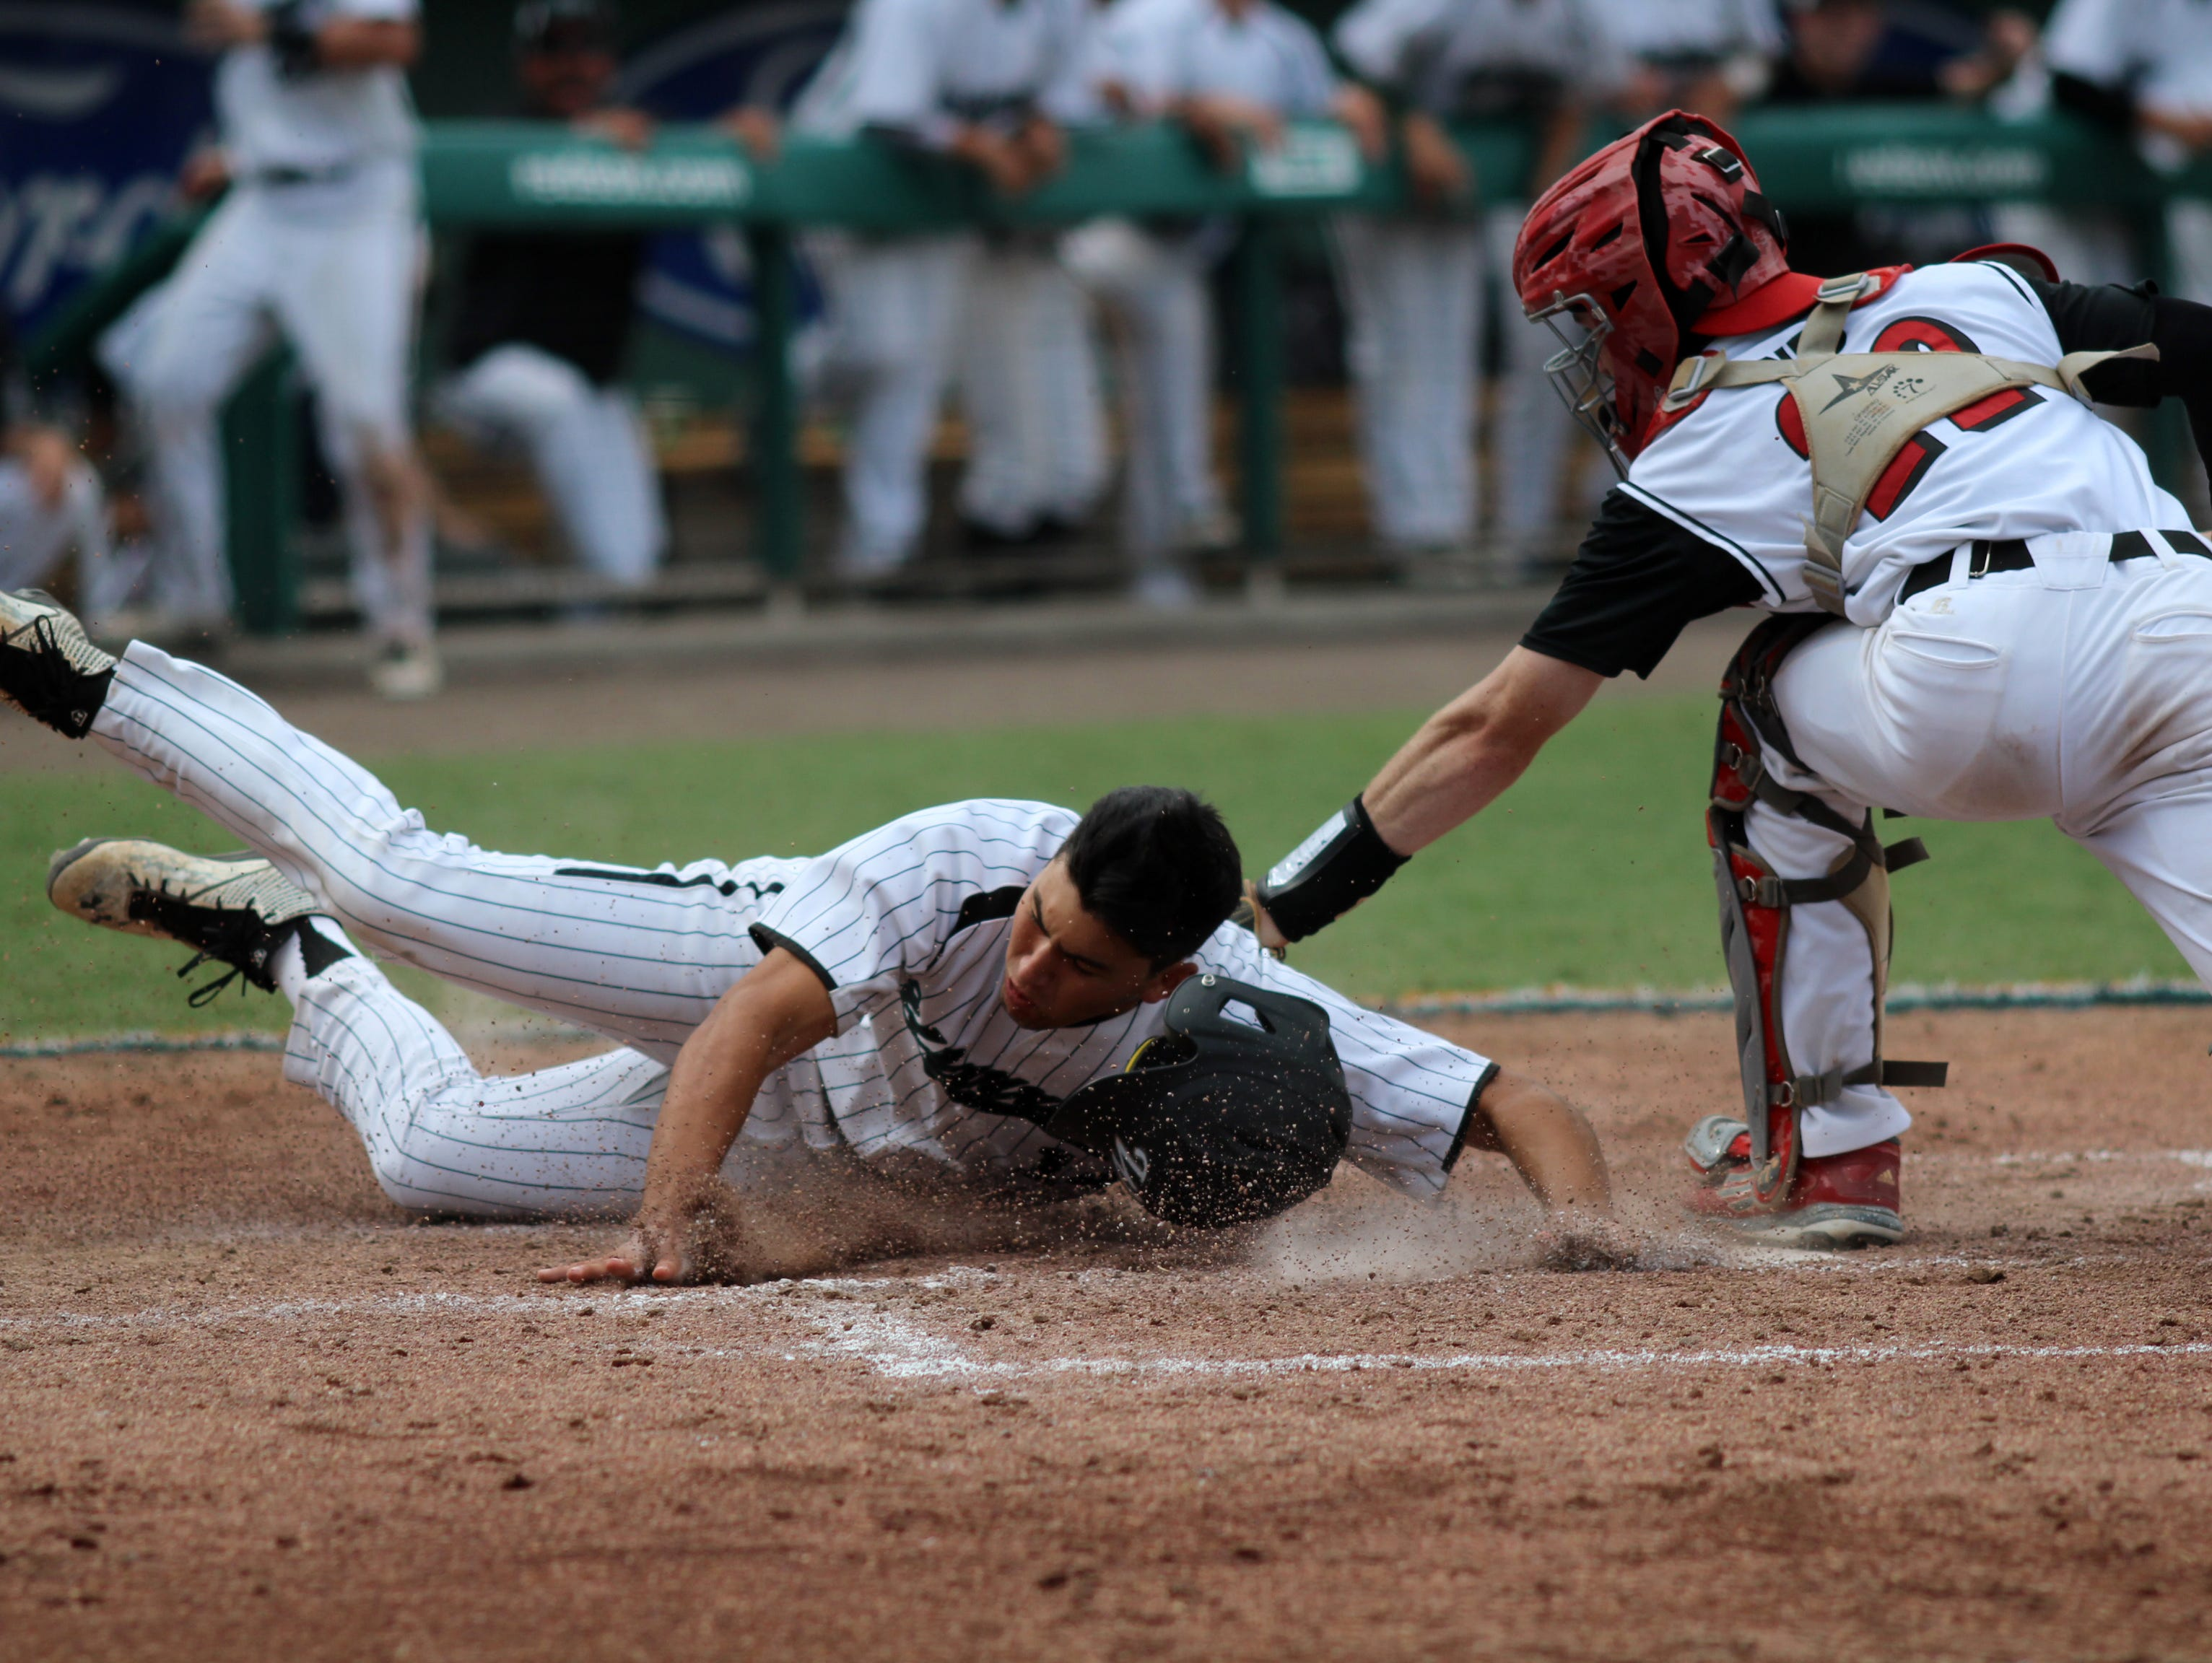 NFC catcher Taylor Schmidt reaches for the tag during Tuesday's FHSAA Class 3A State Championship game at jetBlue Park in Fort Myers, Florida.